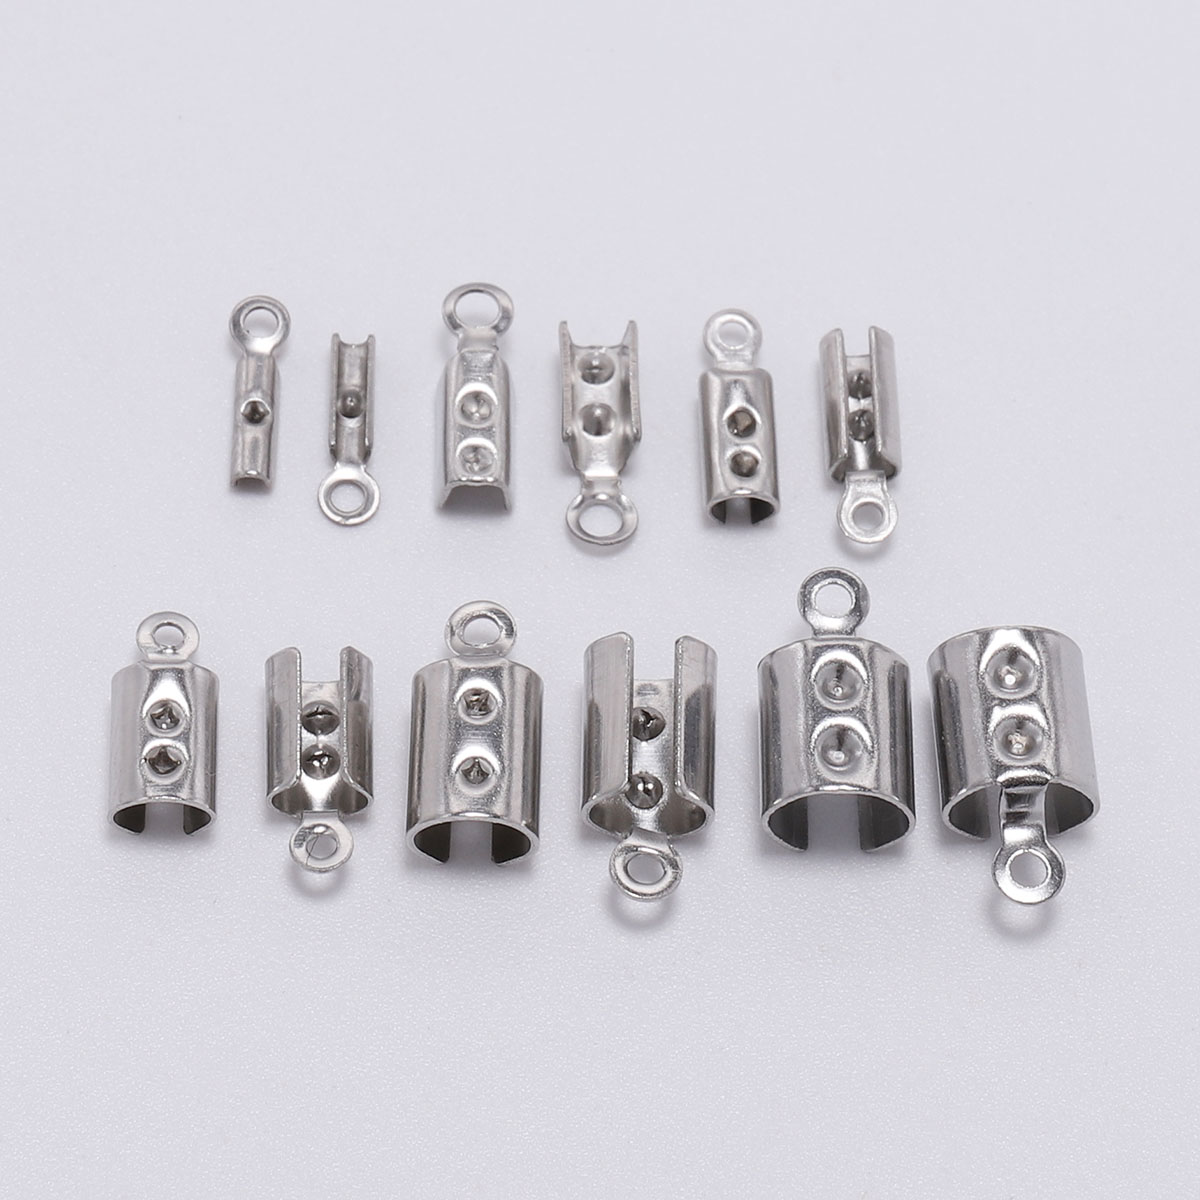 50pcs 1-5mm Stainless Steel Leather Cord Crimp Beads End Caps Fastener Bracelet Necklace Connectors For Jewelry Making Supplies